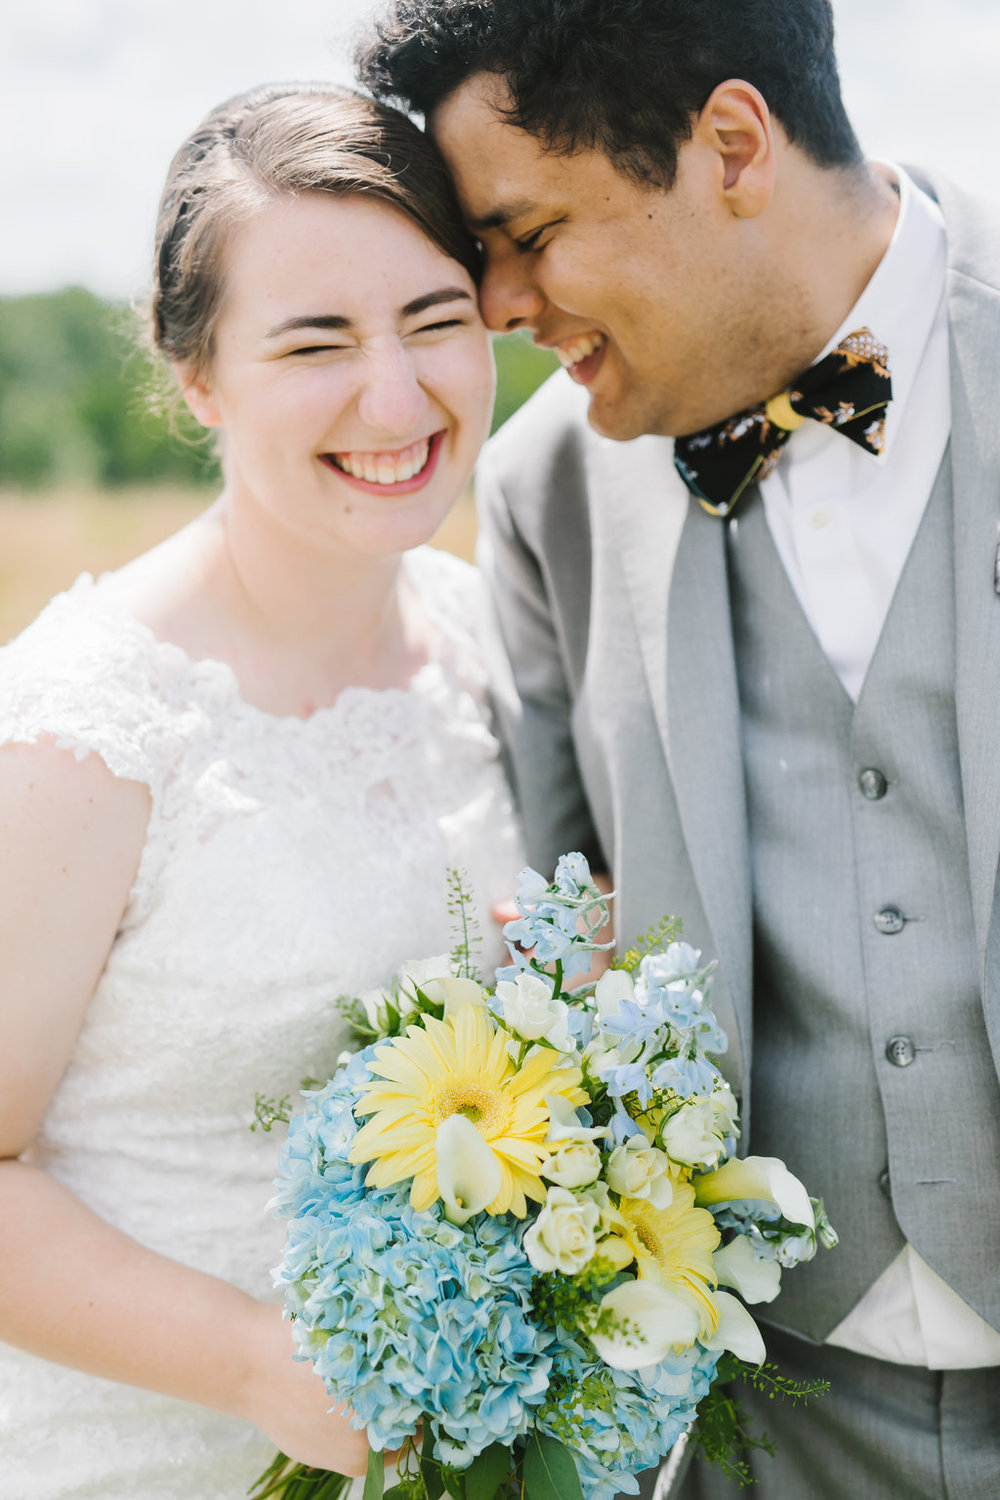 Sarah+JacobWedding-EmilyTebbettsPhotography--482.jpg